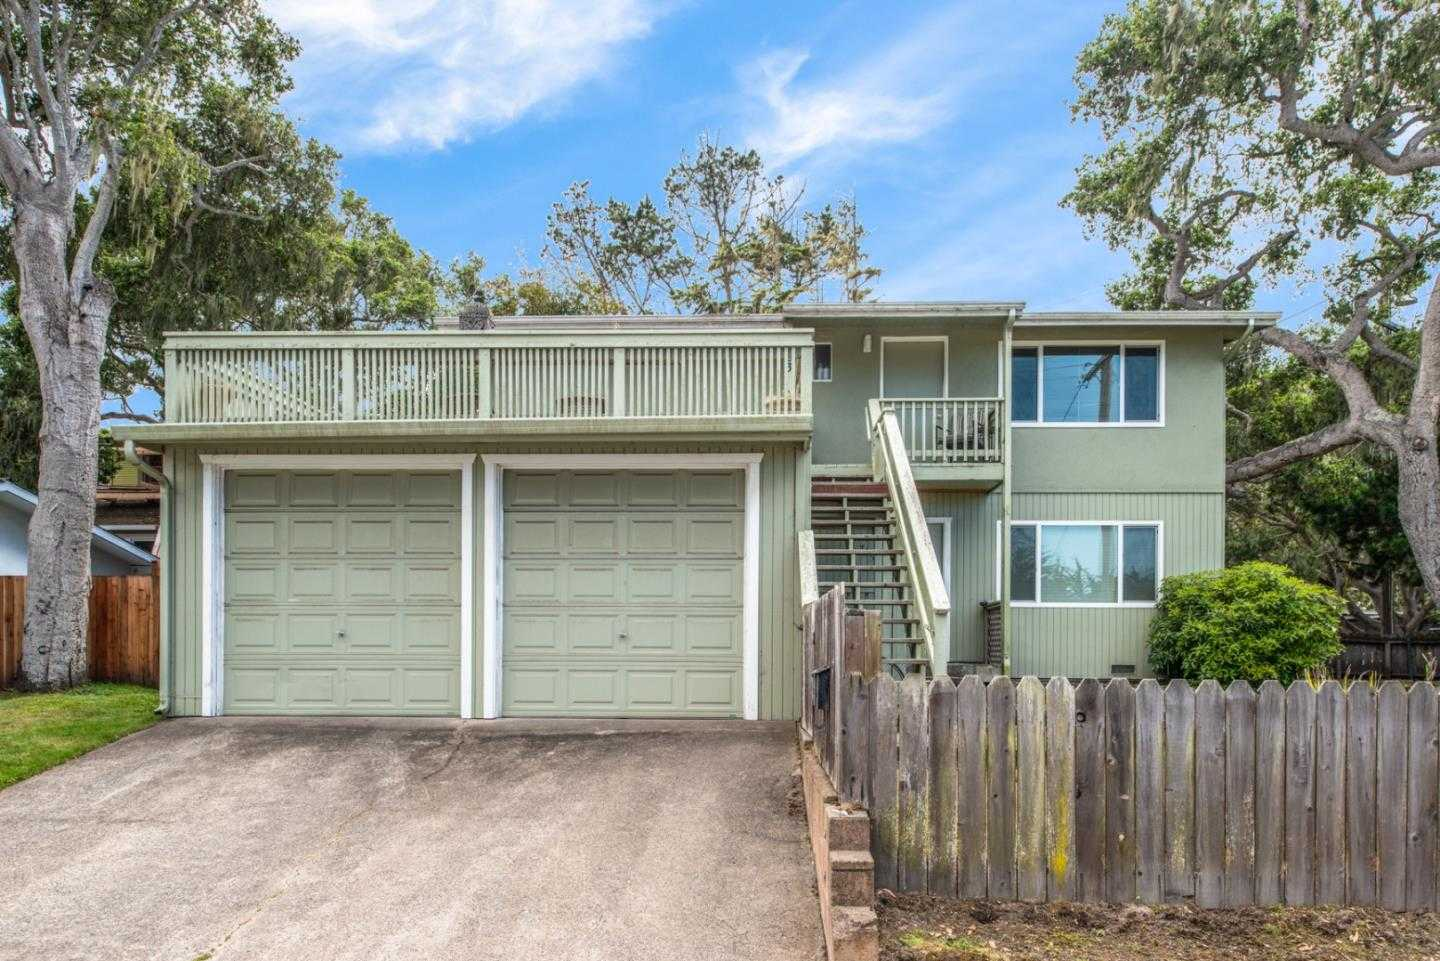 $935,000 - 4Br/2Ba -  for Sale in Pacific Grove